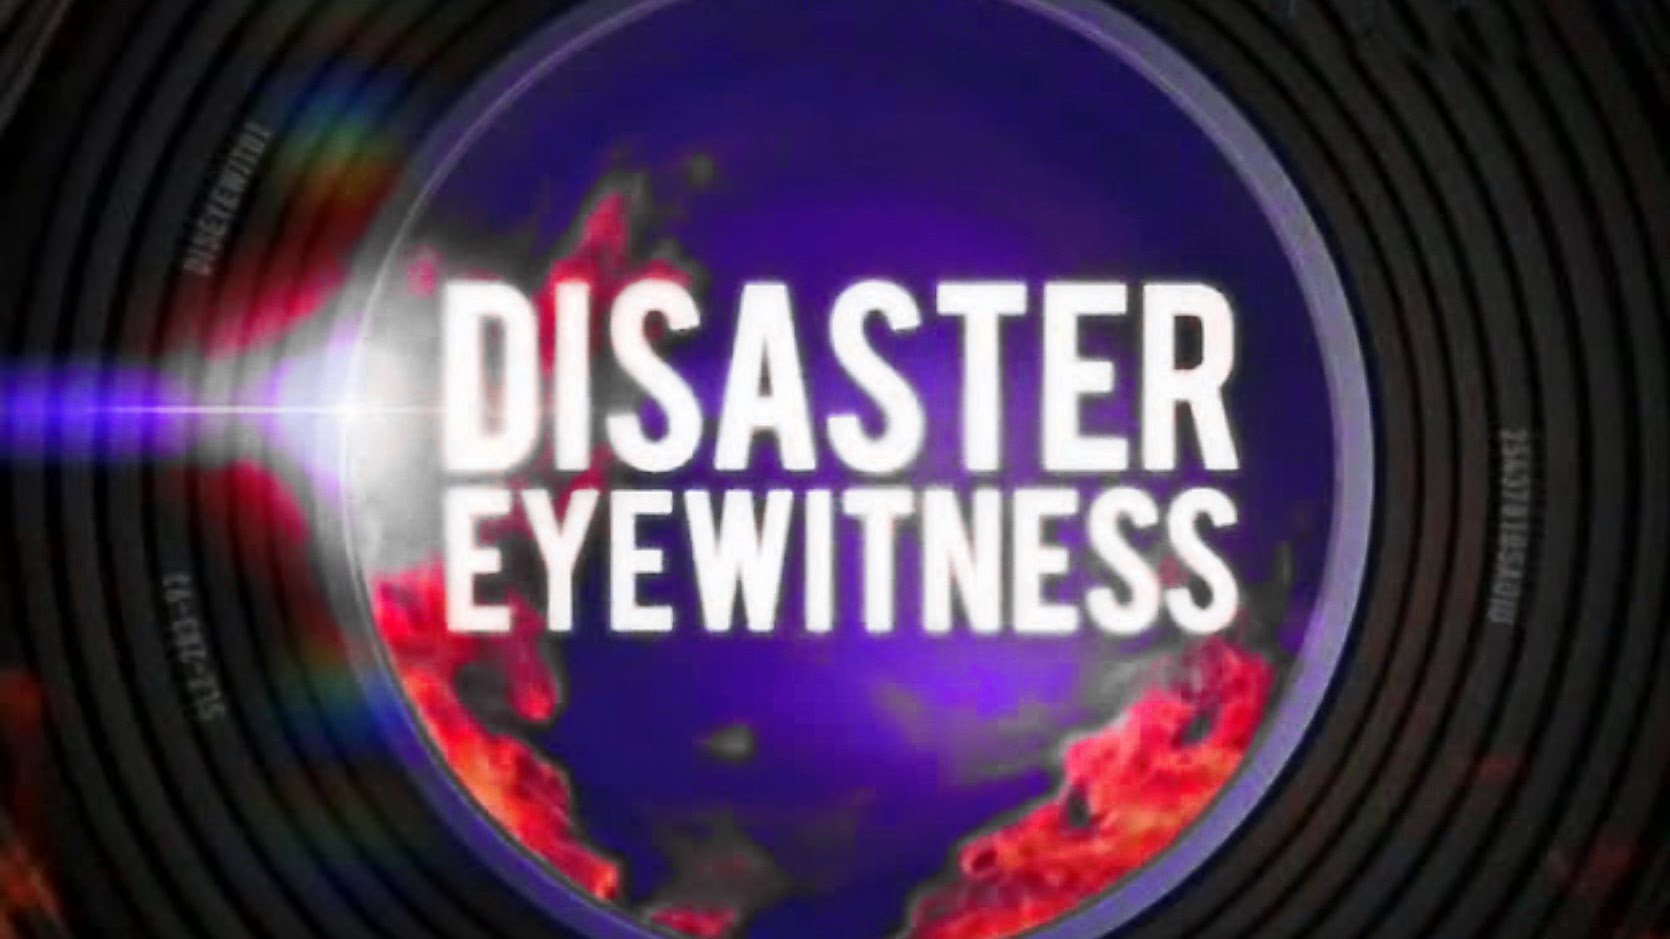 Очевидцы катастроф 3 / Disaster Eyewitness (2009)